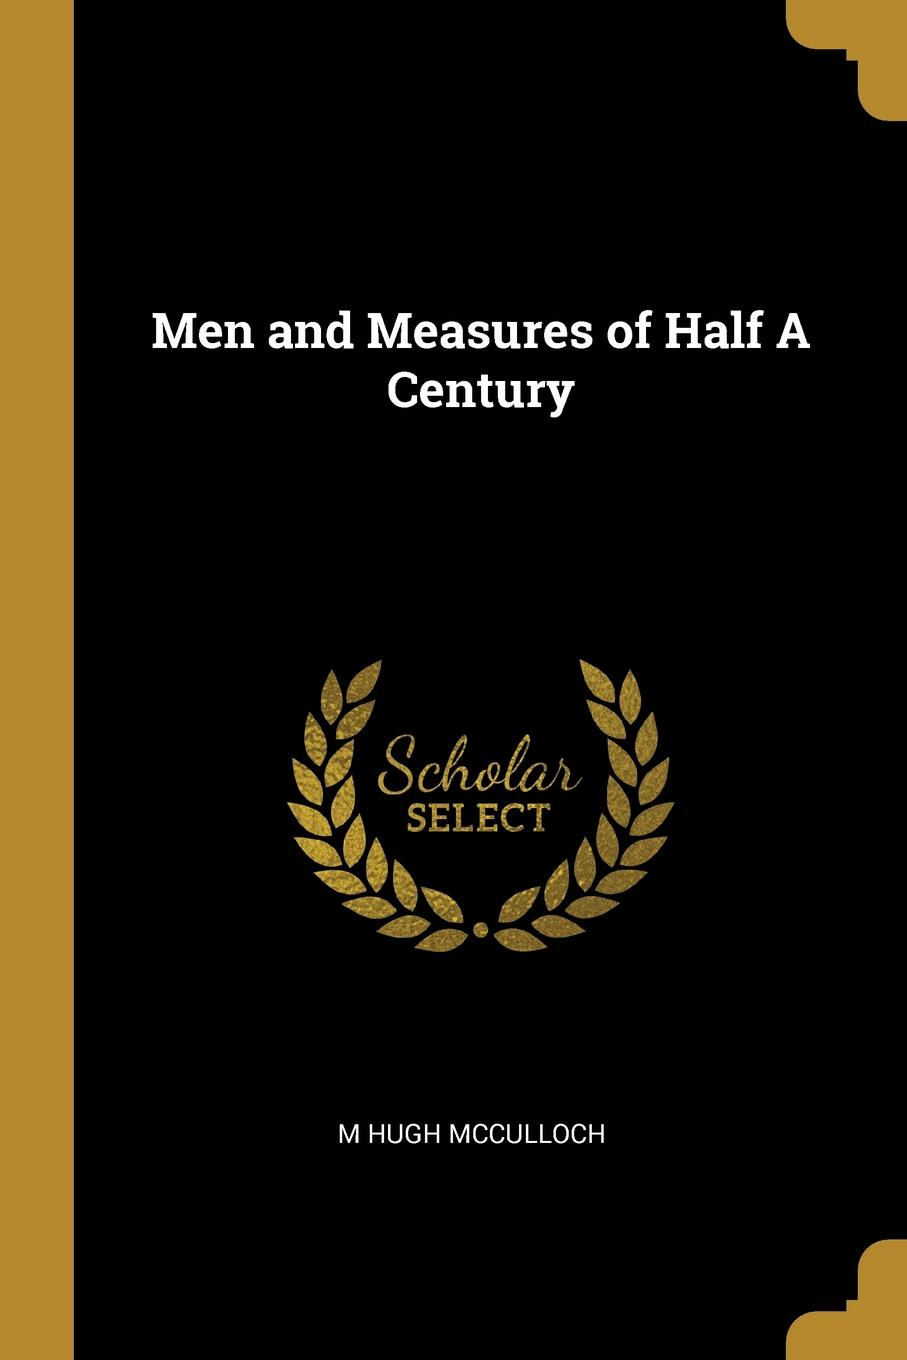 M Hugh McCulloch Men and Measures of Half A Century